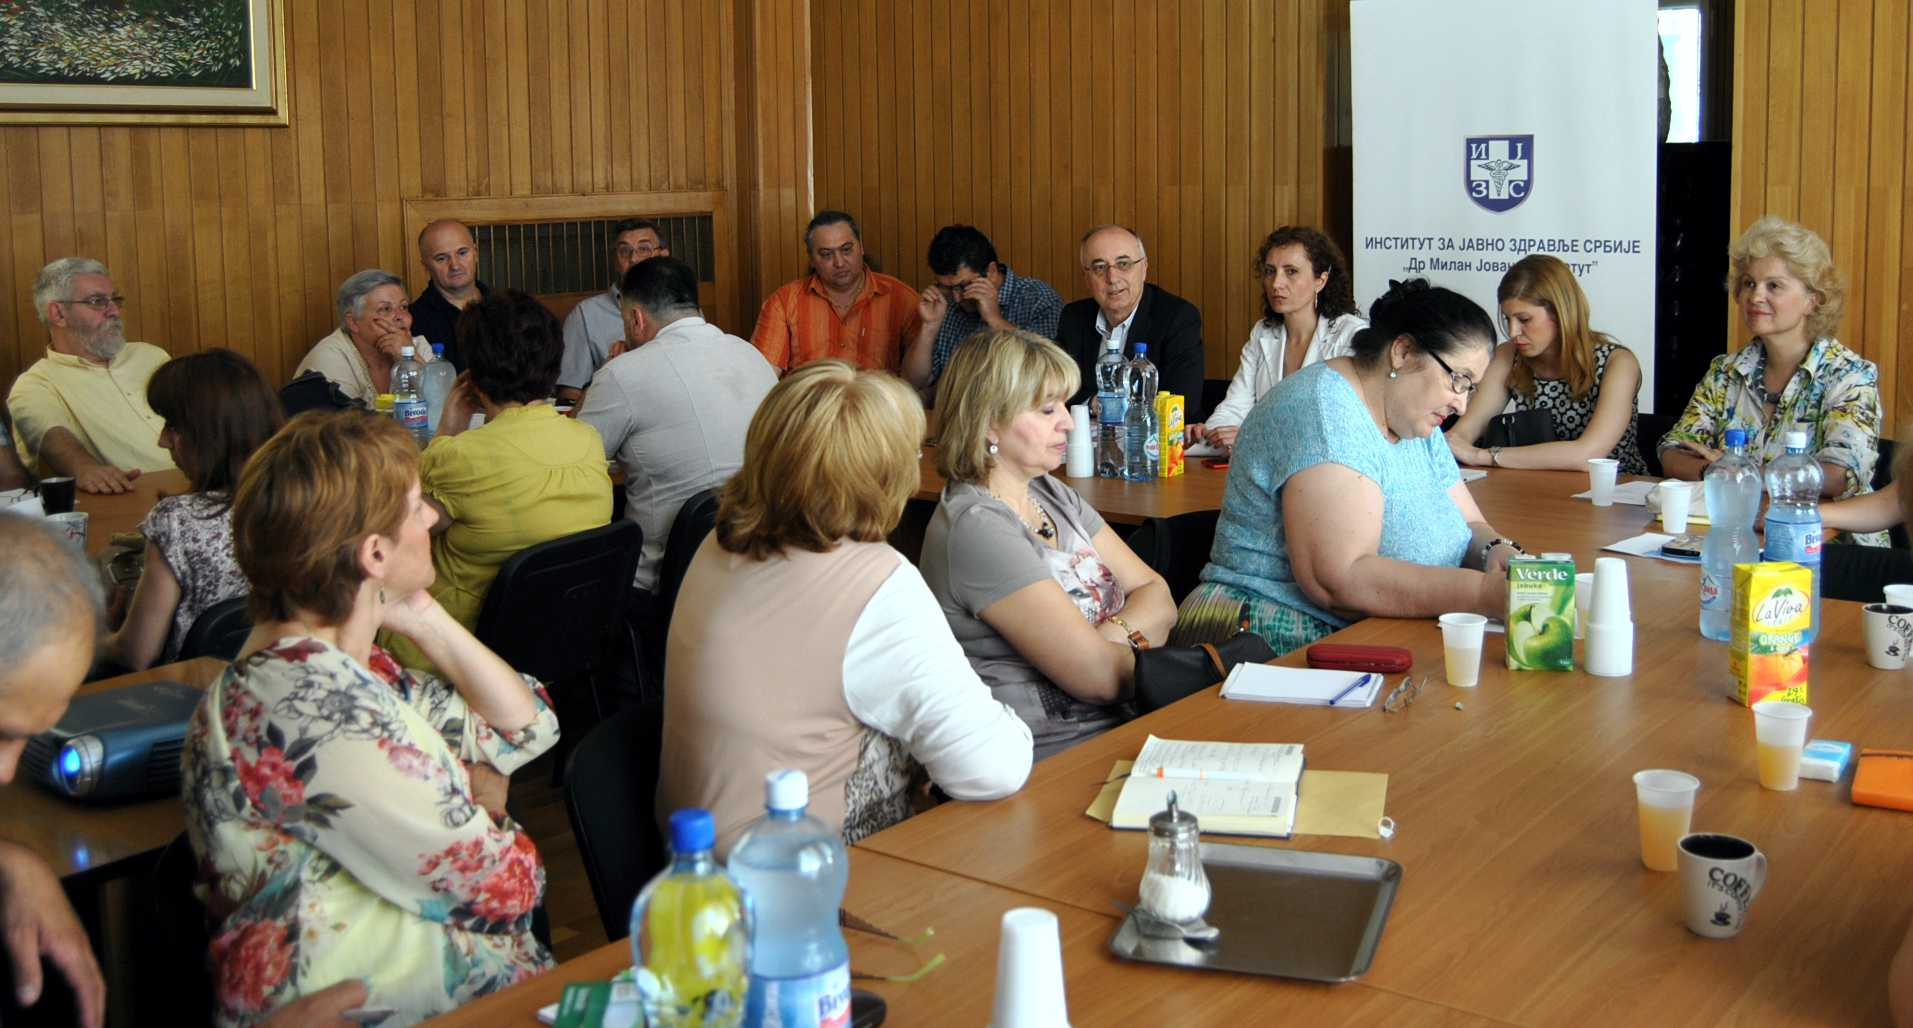 Serbia, Annual Influenza Meeting of Vet and IPH, 3 June 2015